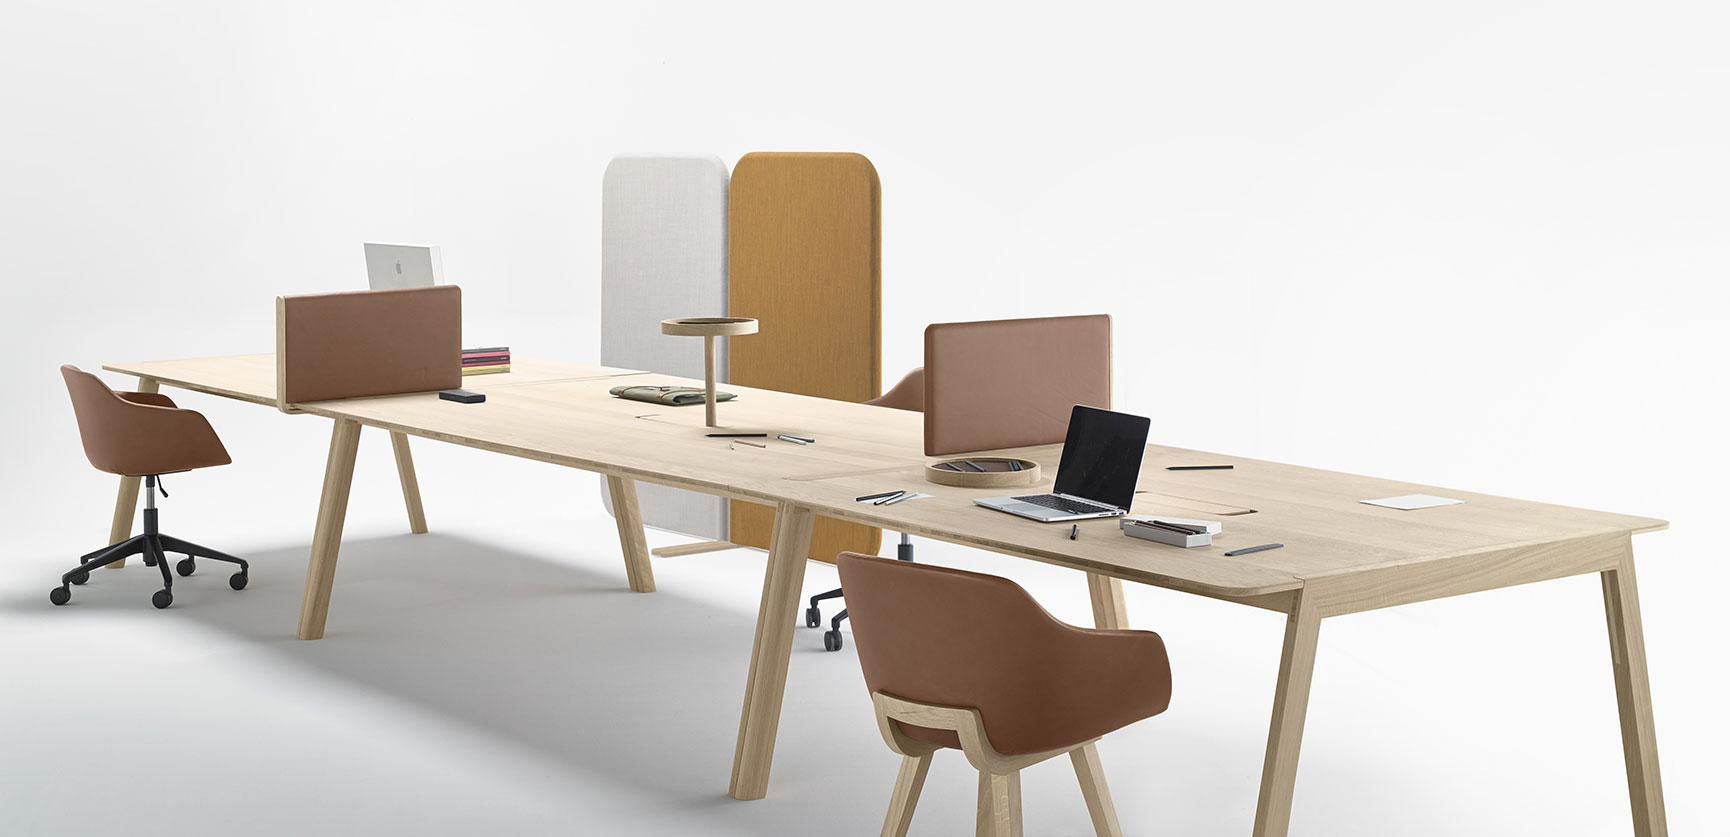 Alki meubles contemporains en bois fabriqu s au pays for Table bureau design